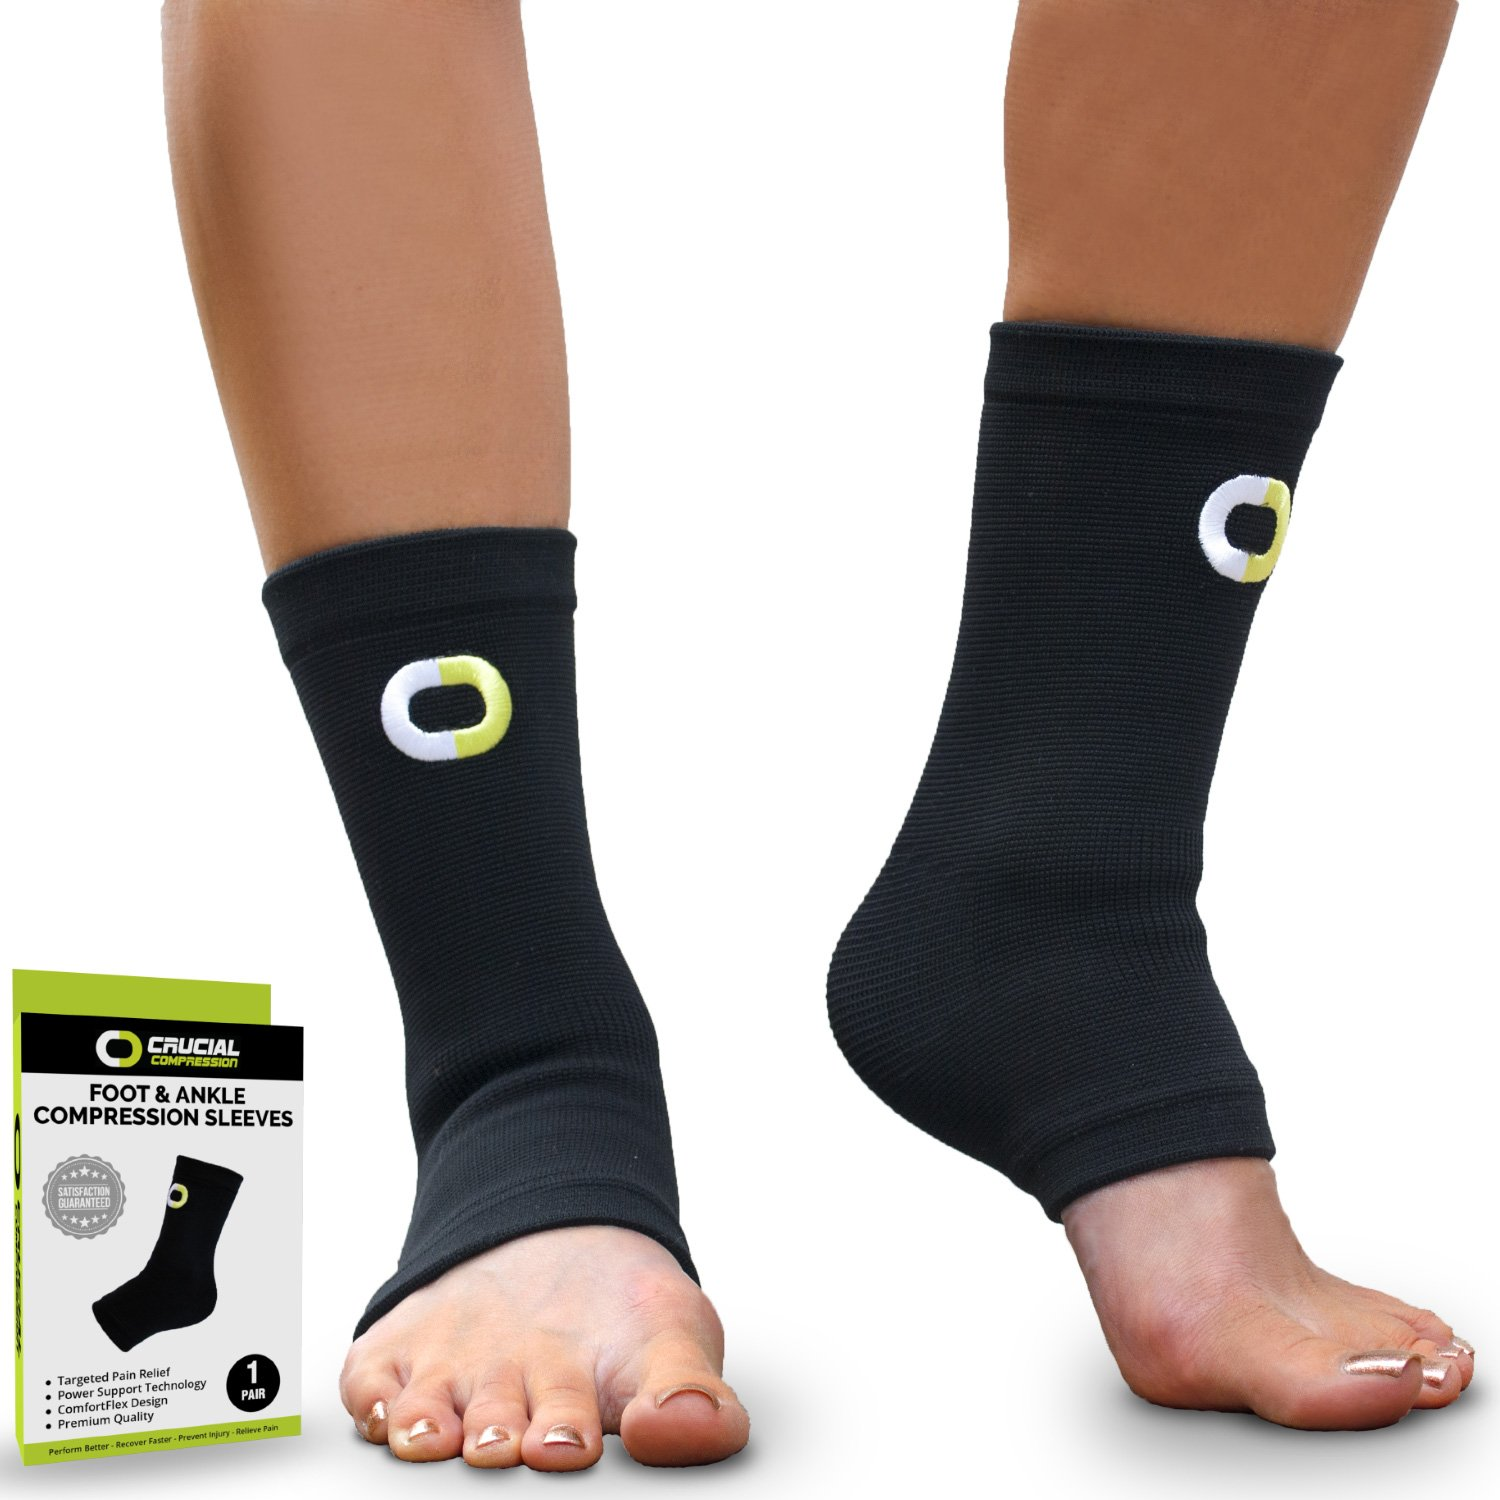 Details about NEW Ankle Compression Sleeve Pair Brace Support Running Socks  Men Women 427d8dcf1f